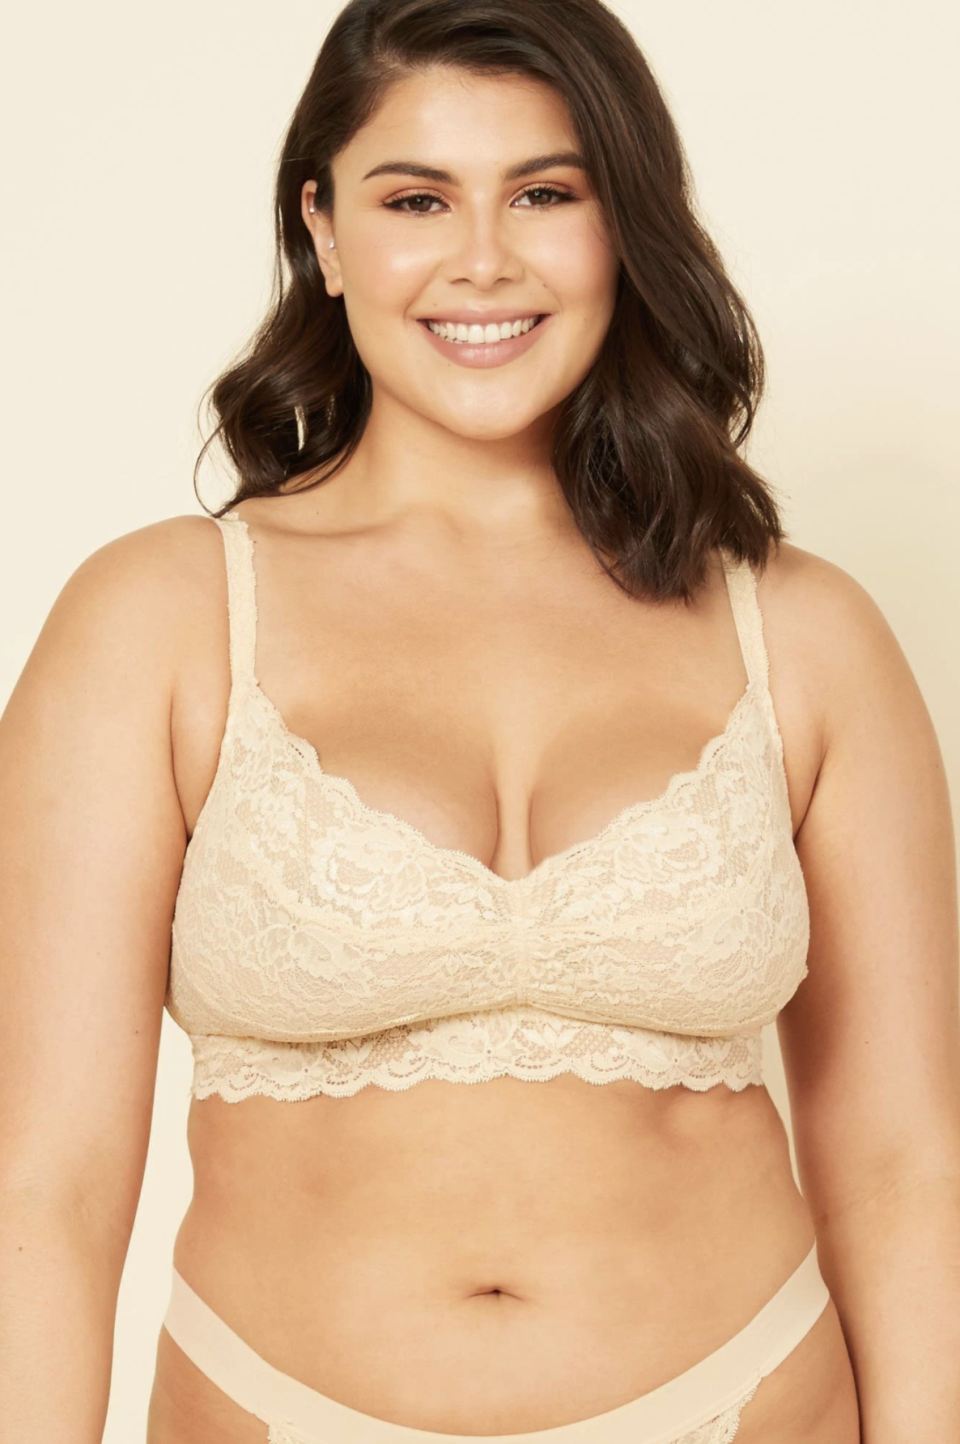 Never Say Never Extended Sweetie Bralette (Photo via Cosabella)